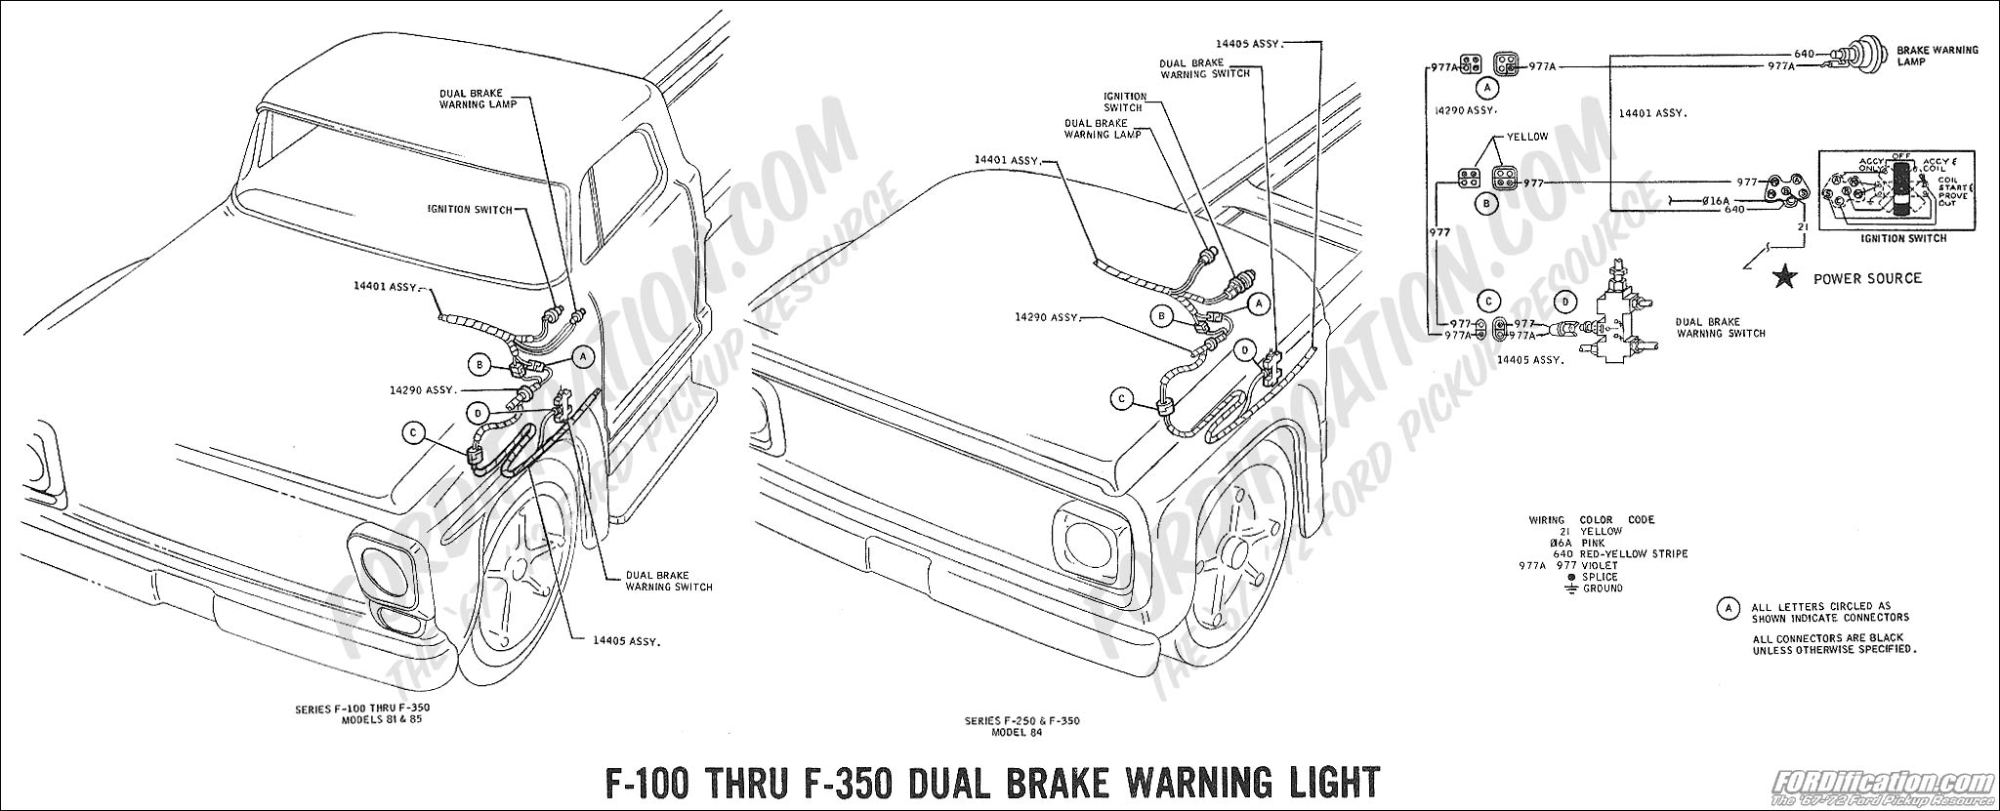 hight resolution of 1969 f 100 thru f 350 dual brake warning light